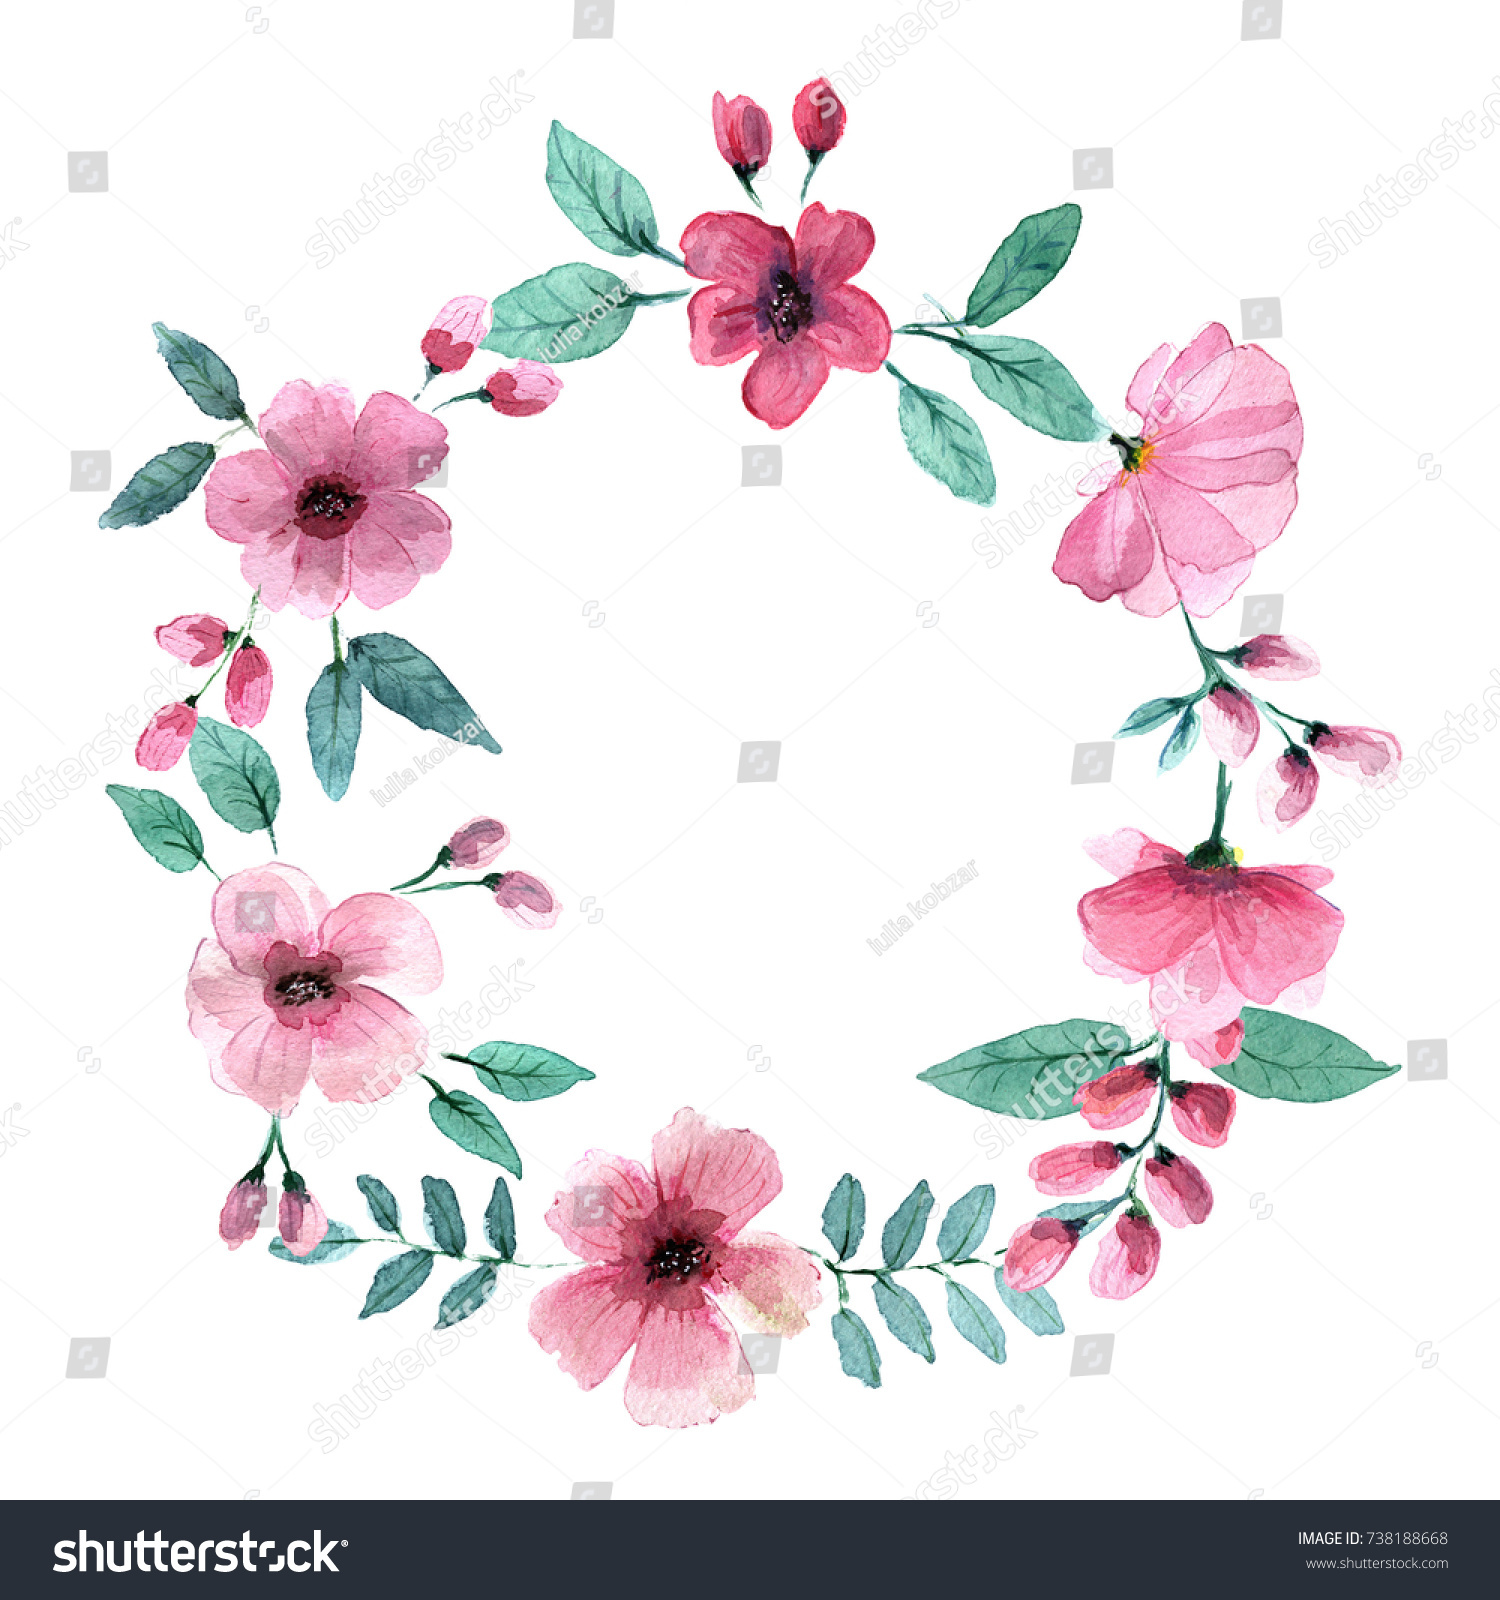 Delicate Pink Flowers Style Watercolors Stock Illustration 738188668